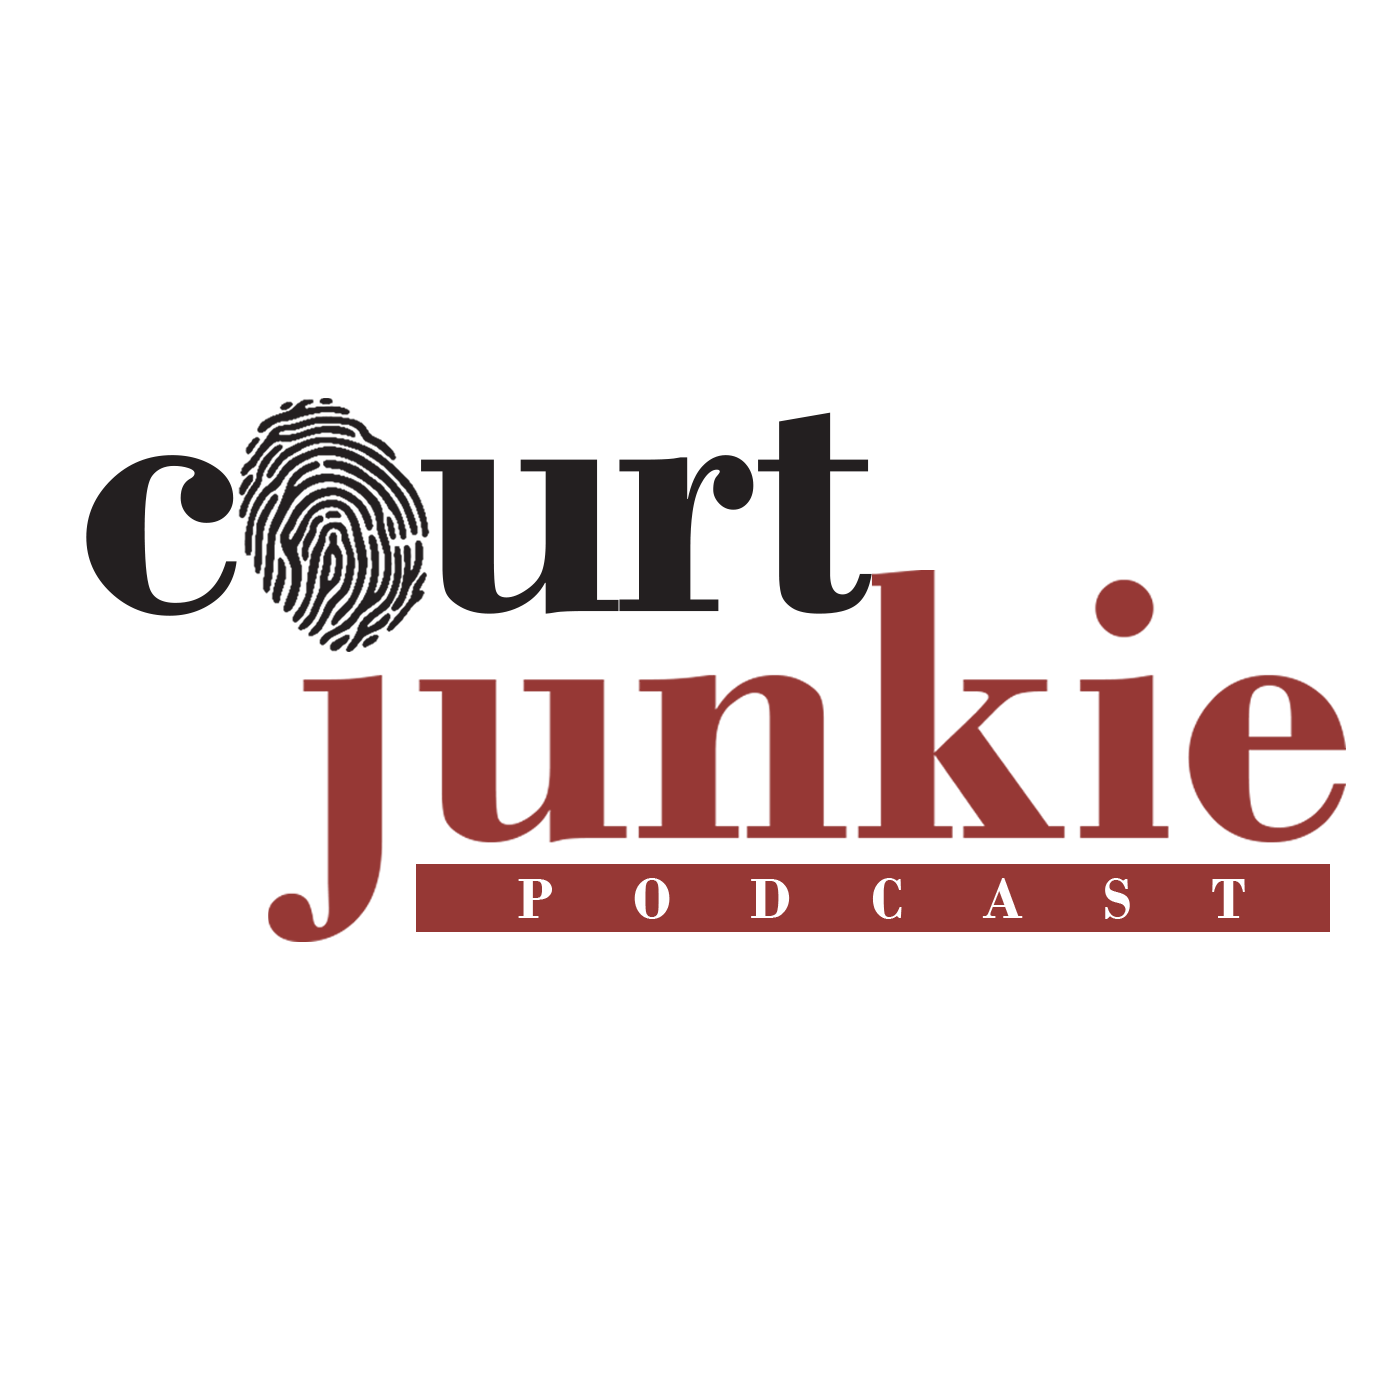 Check out the CourtJunkie Podcast!